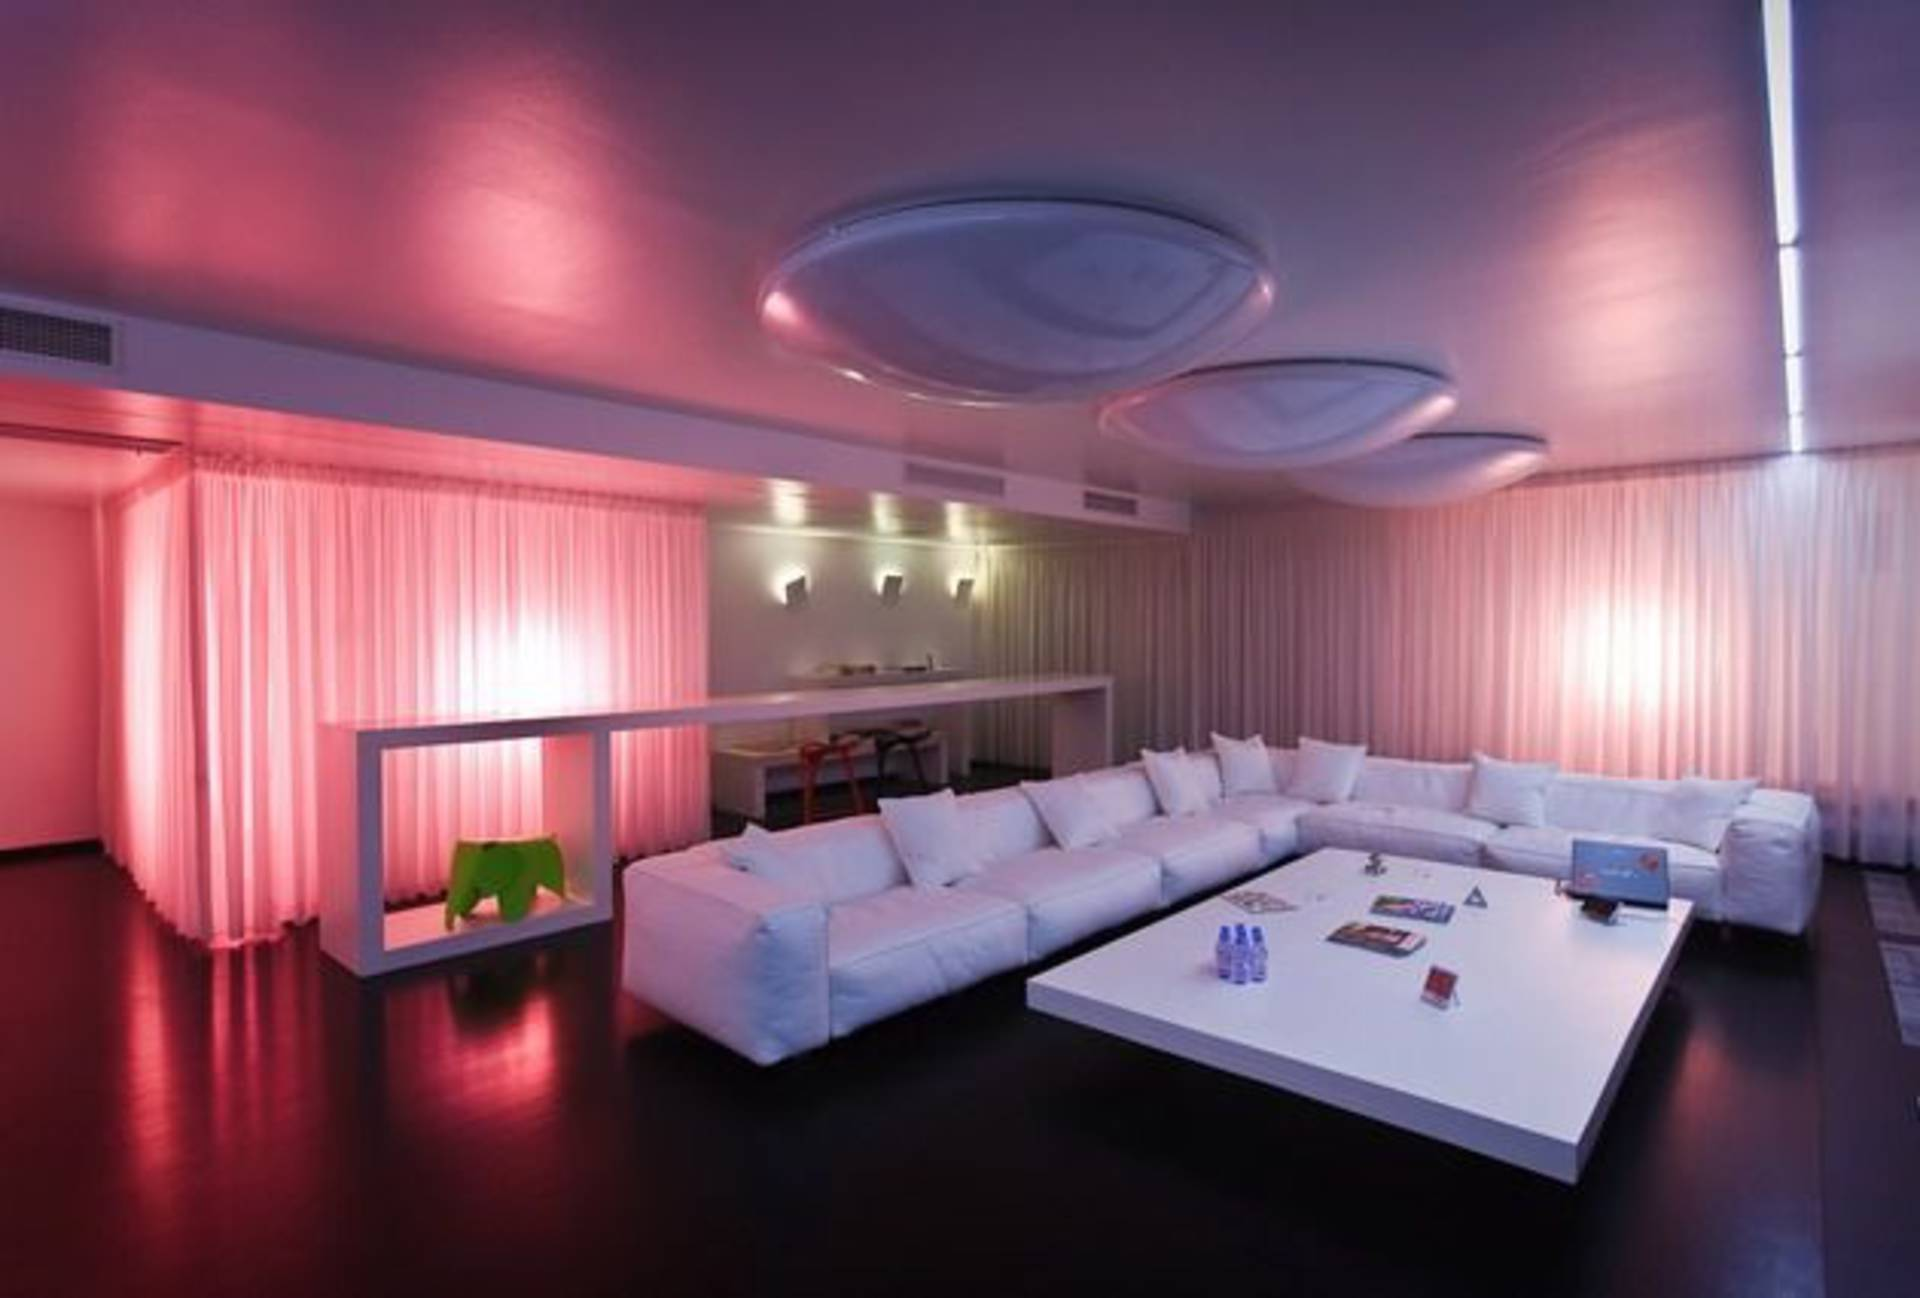 Home Interior Lighting Know About Lighting To Set Right Mood Part 1 My Decorative